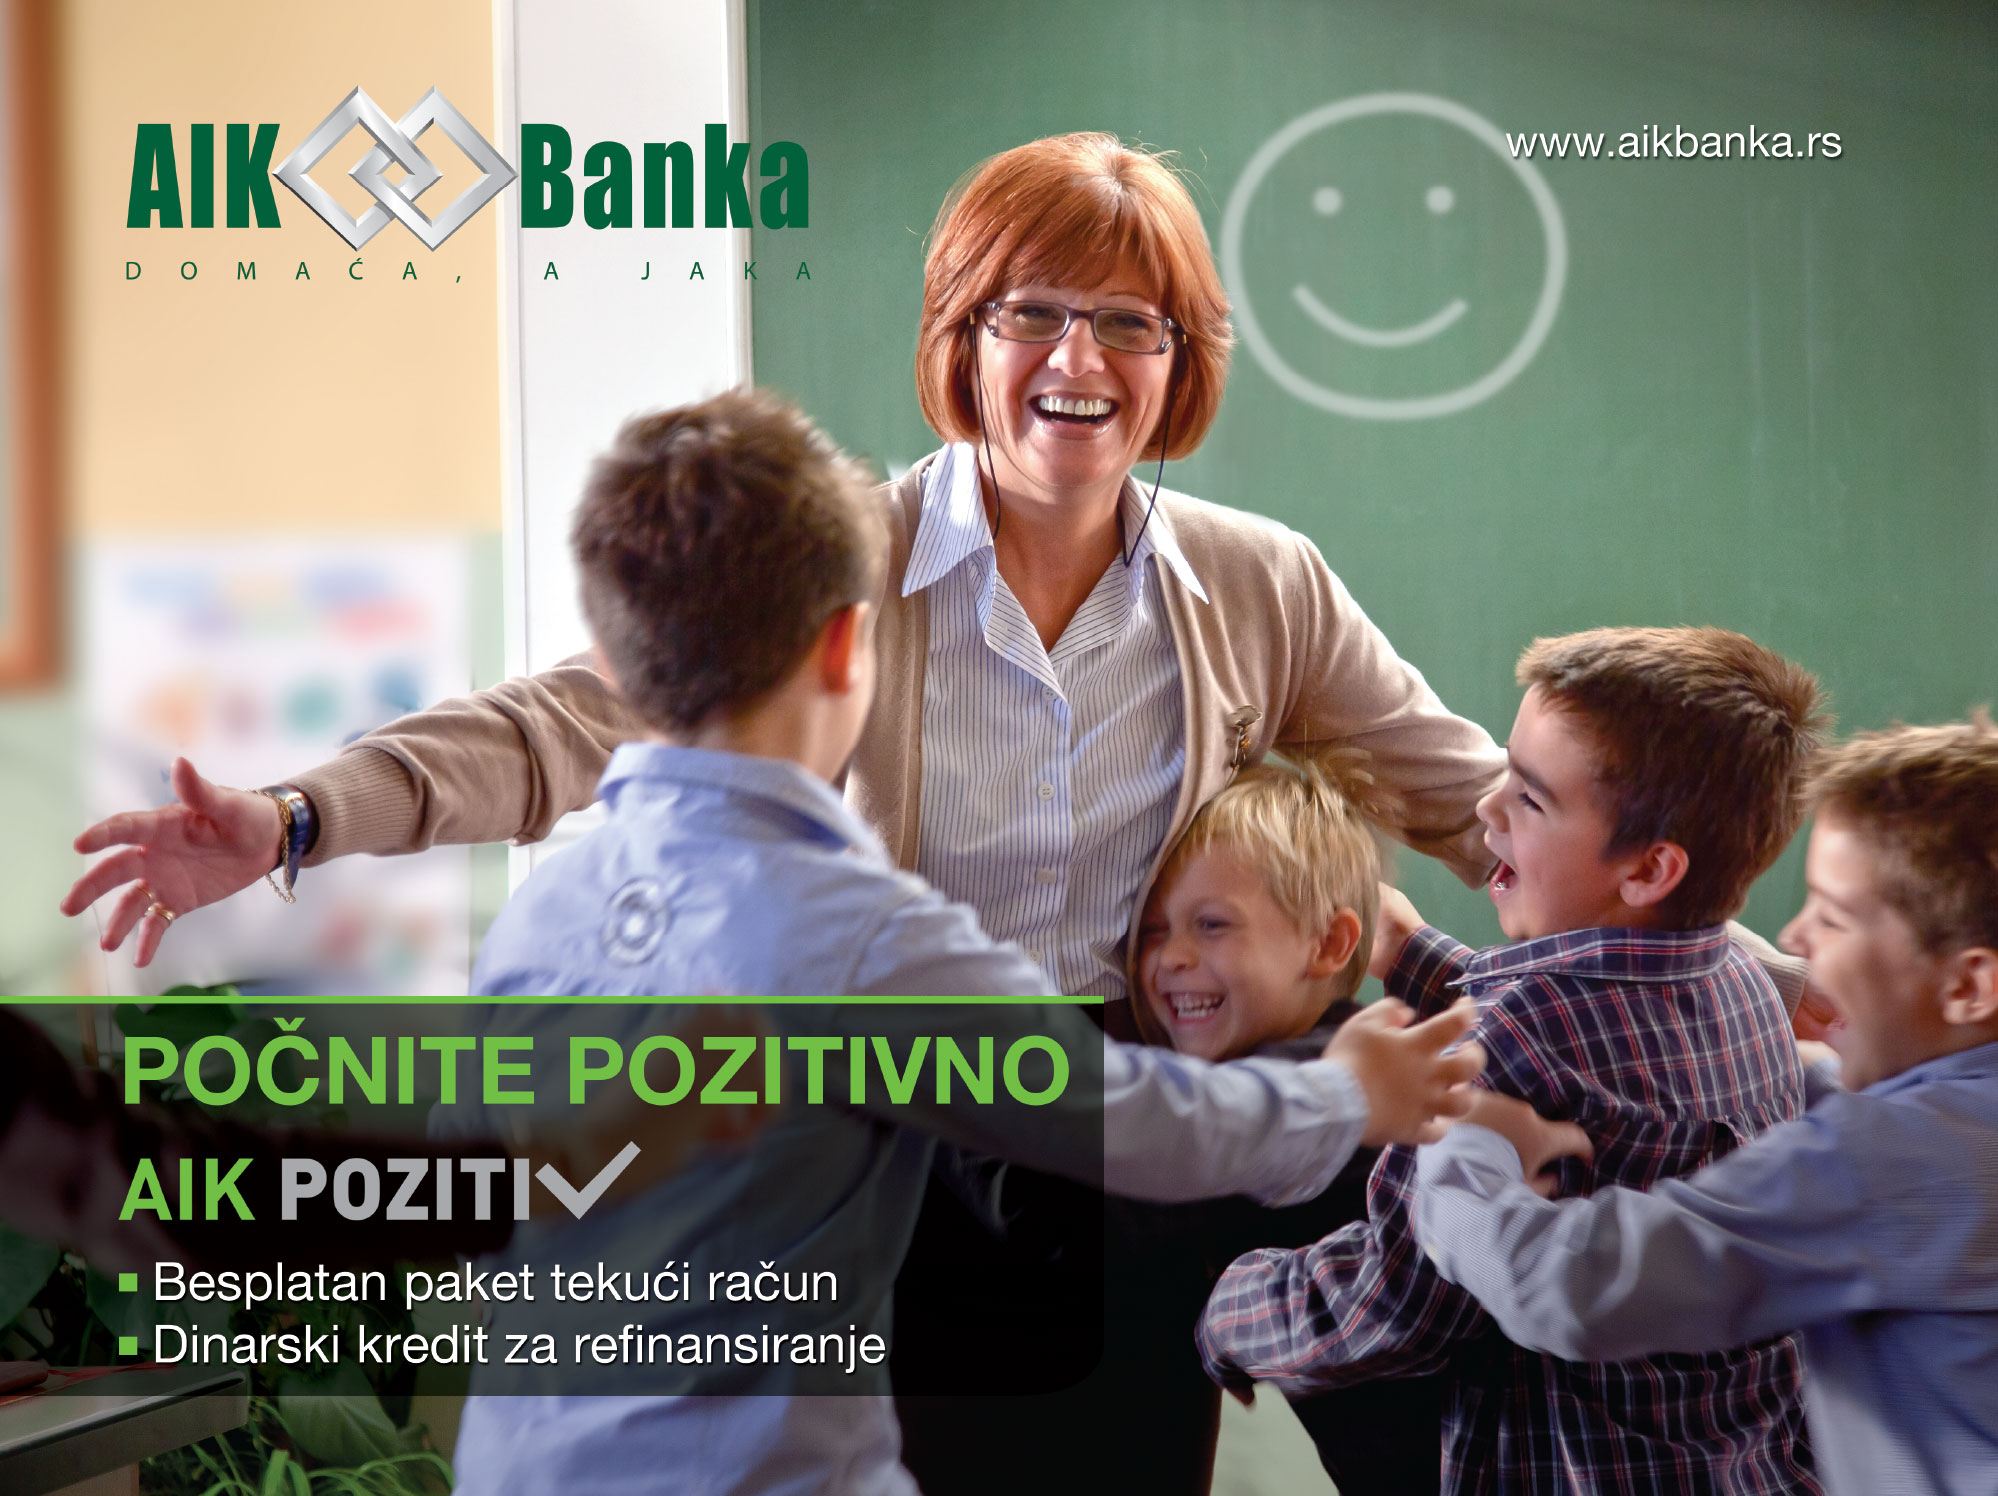 aik banka billboard 2